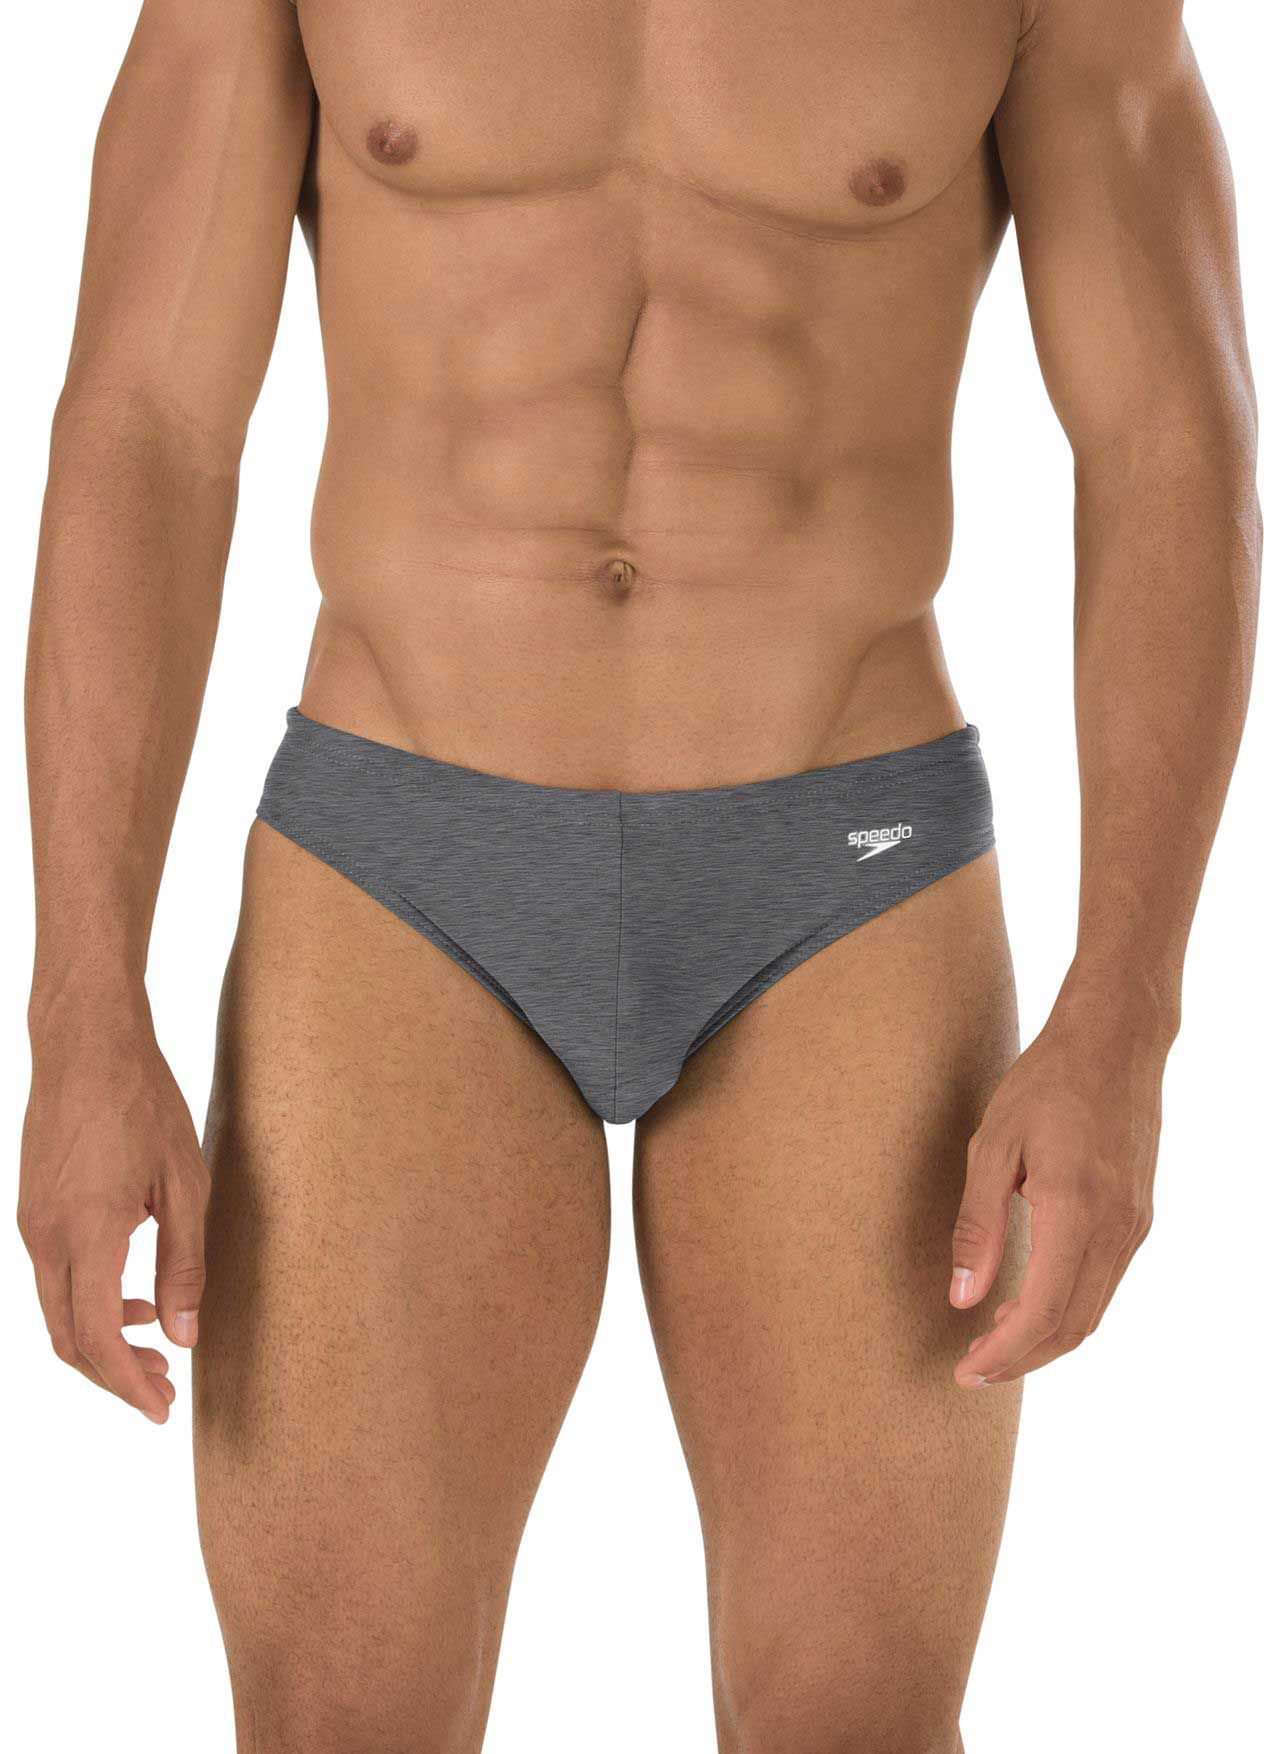 speedo swimwear mens